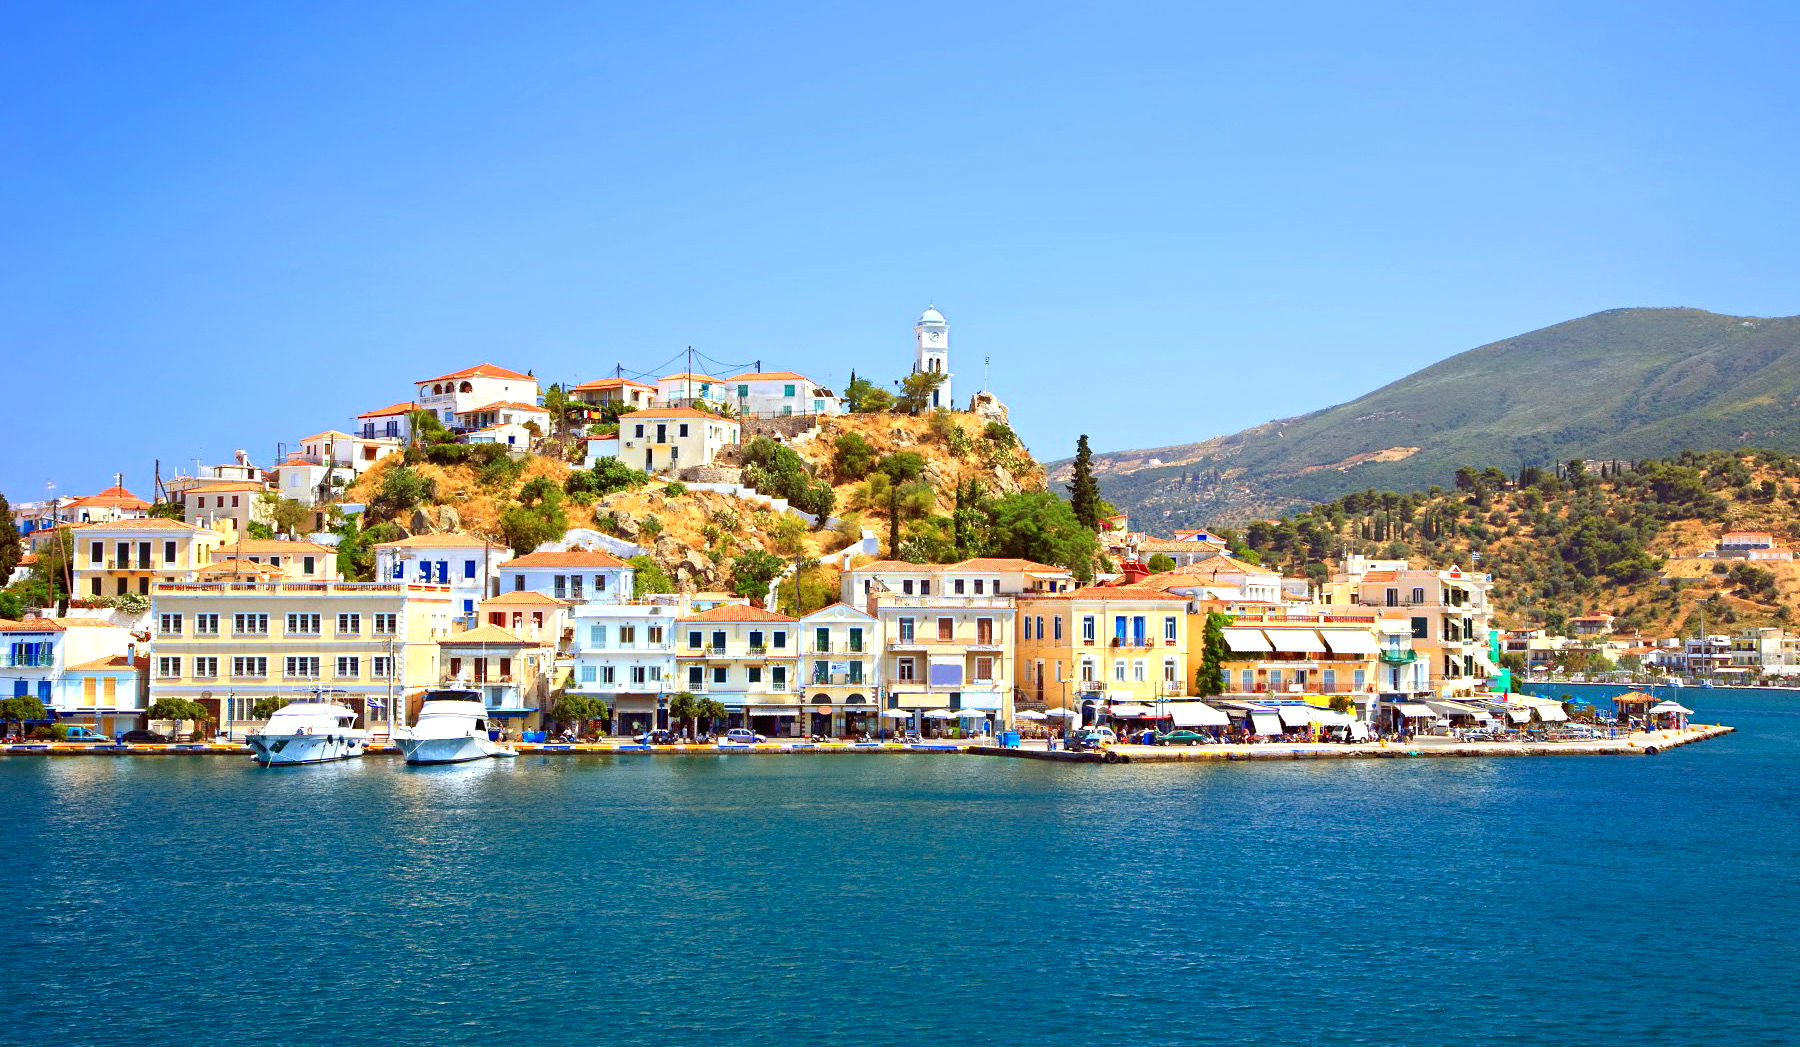 the island of poros view near the sea